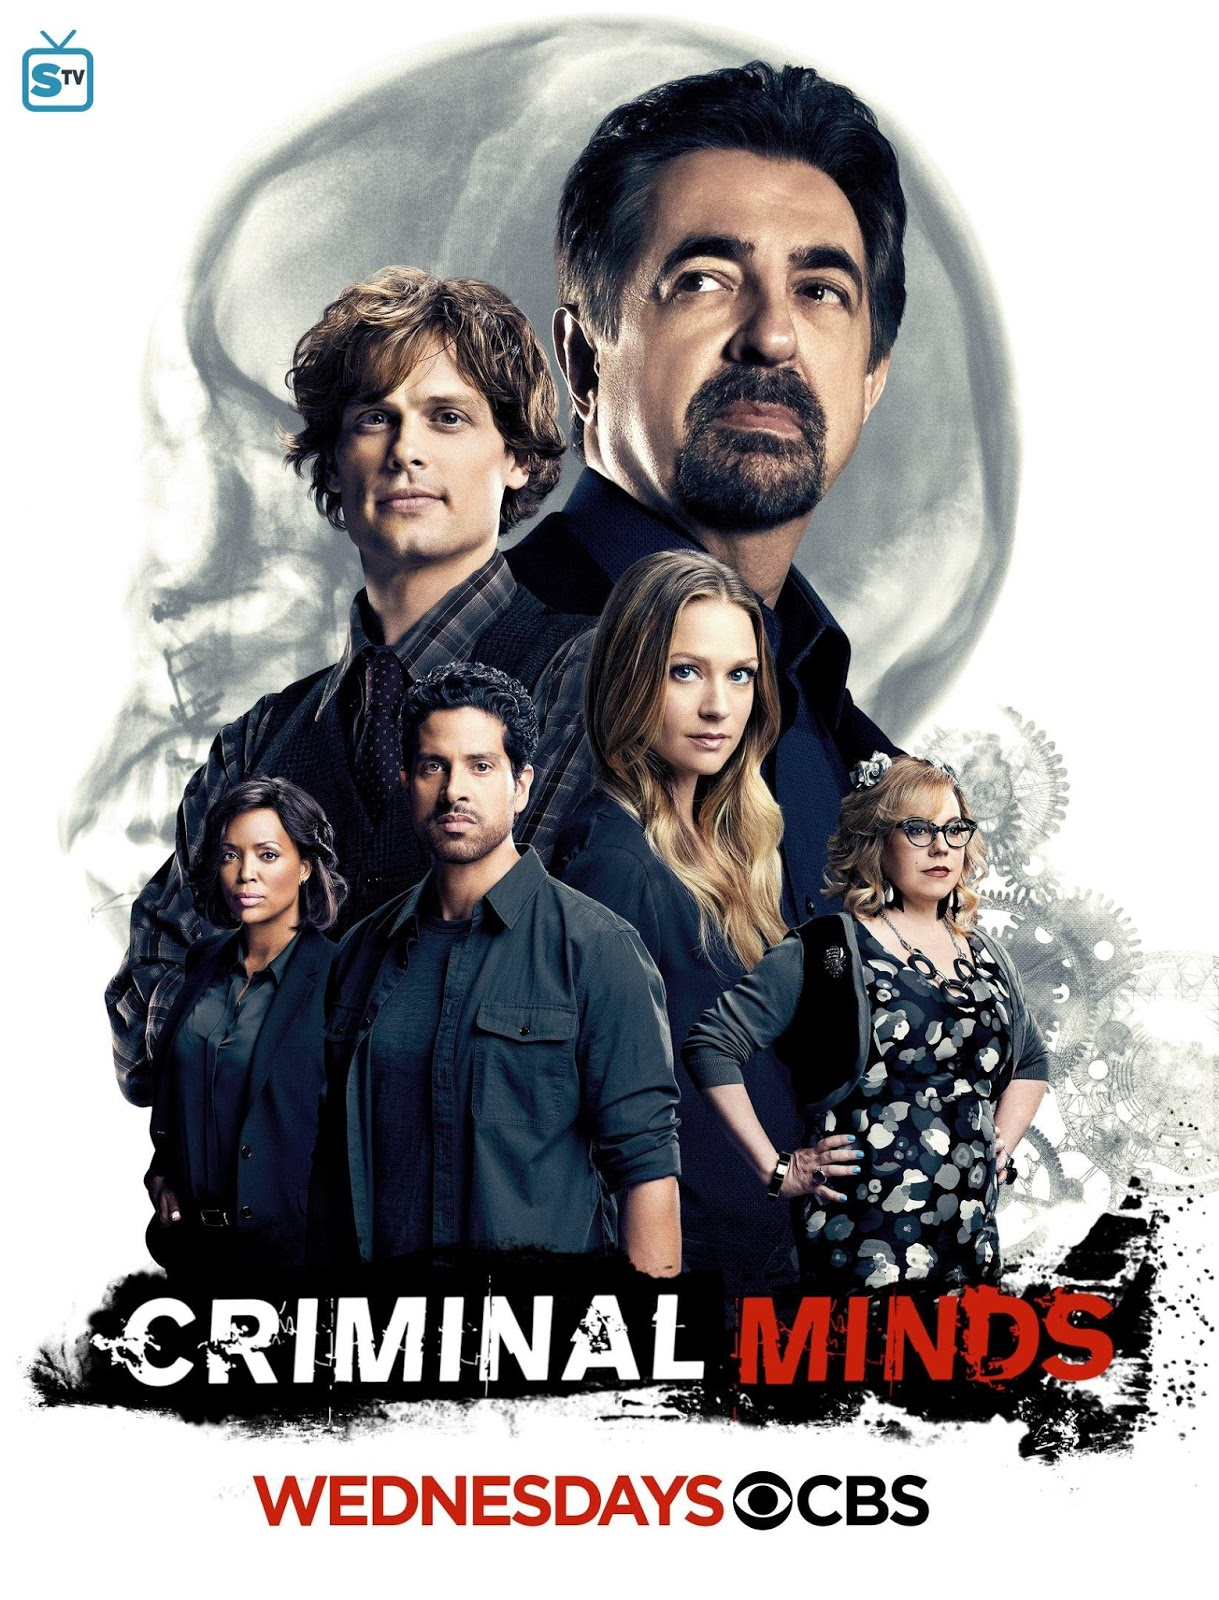 Criminal Minds T12 E3